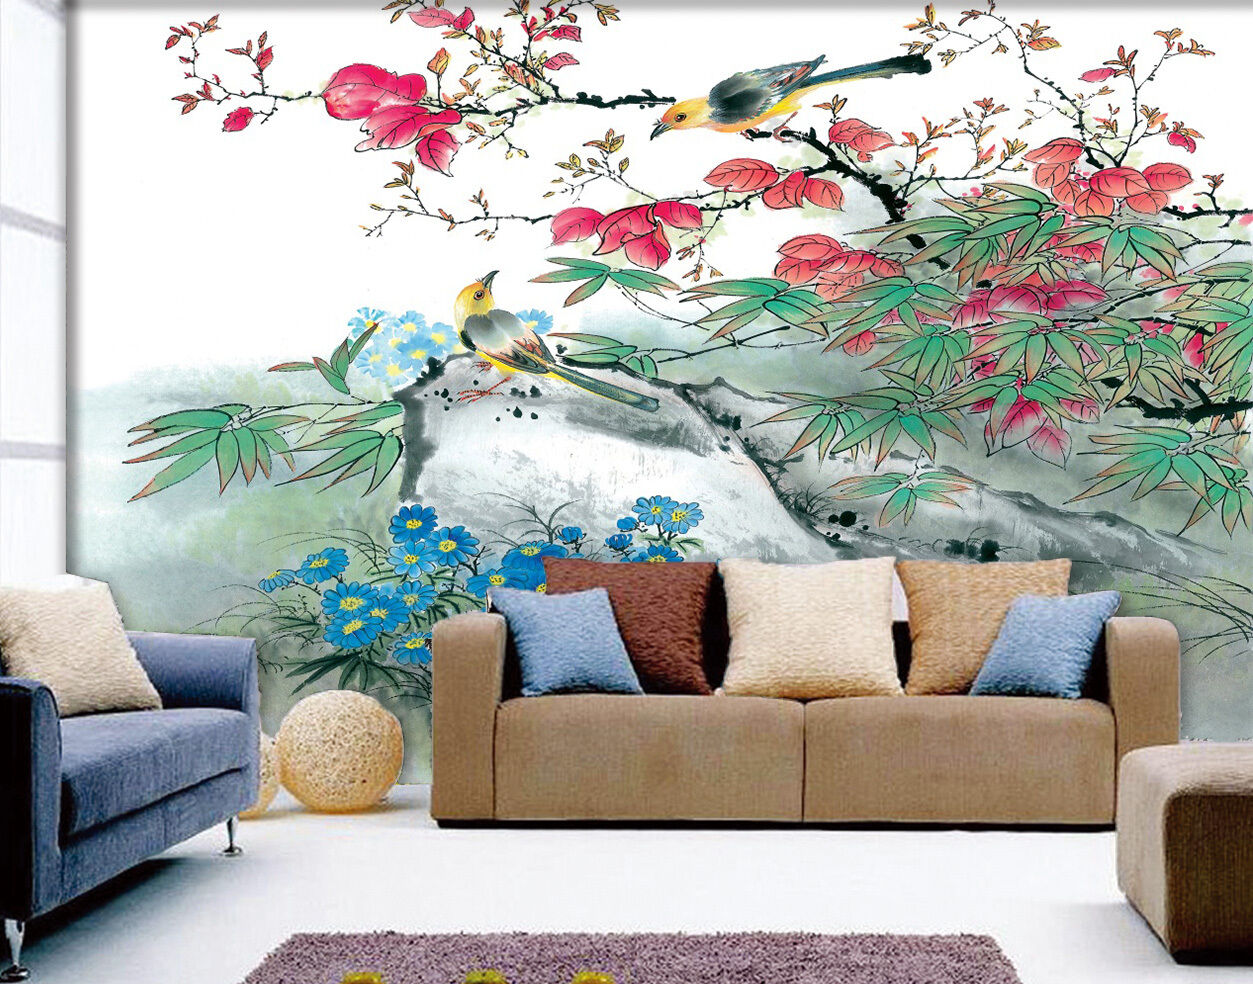 3D Birds And Flowers 101 Wallpaper Decal Dercor Home Kids Nursery Mural  Home